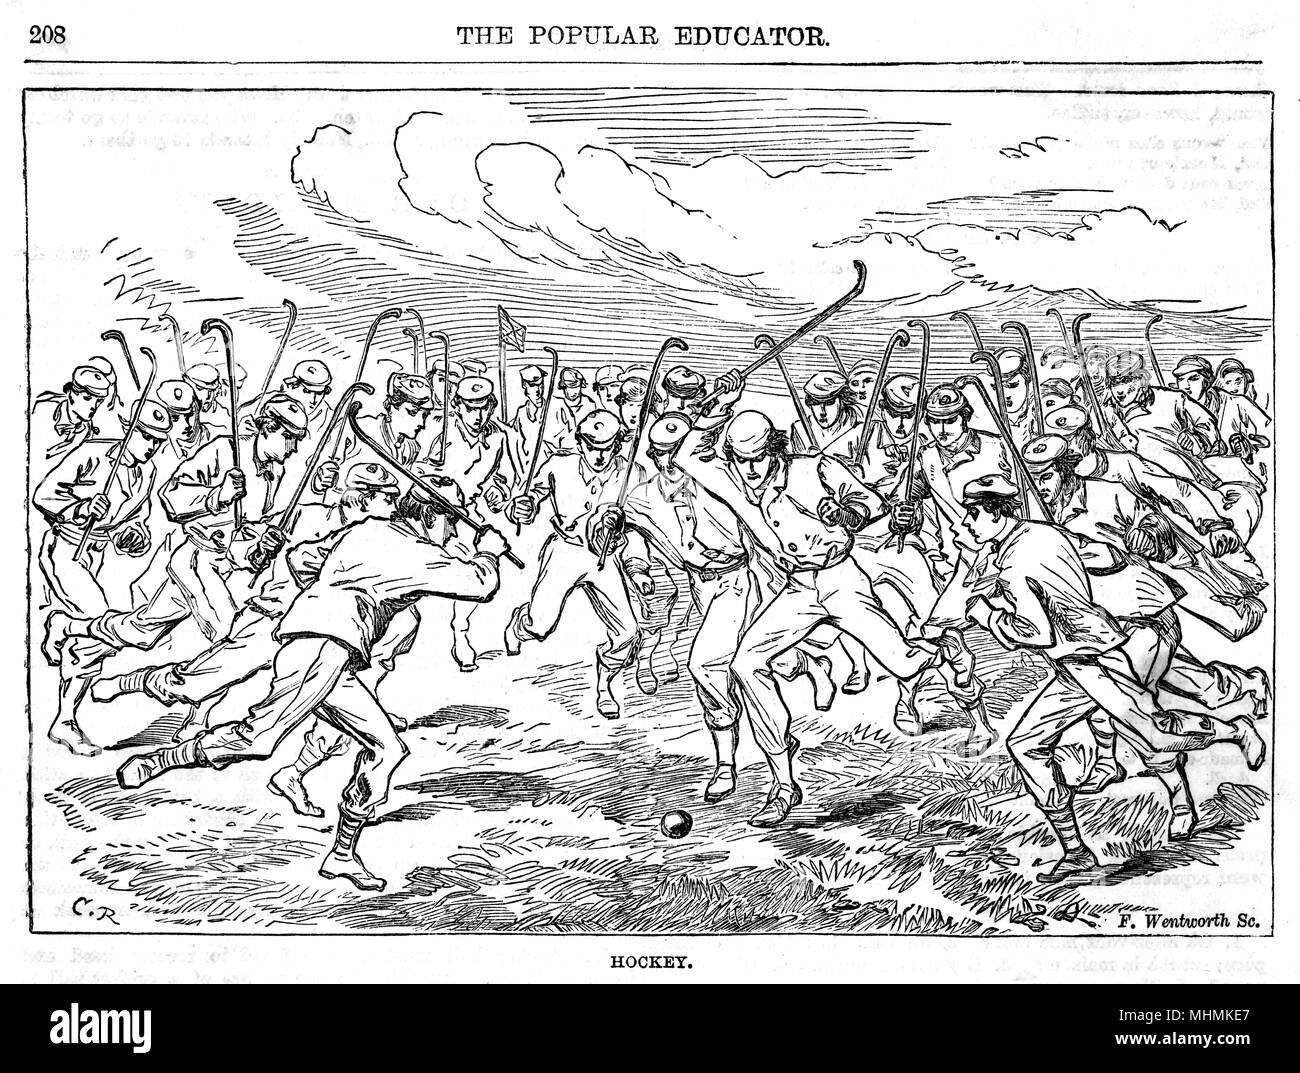 A crowd of players charge towards the ball during a game of hockey.       Date: circa 1860 Stock Photo